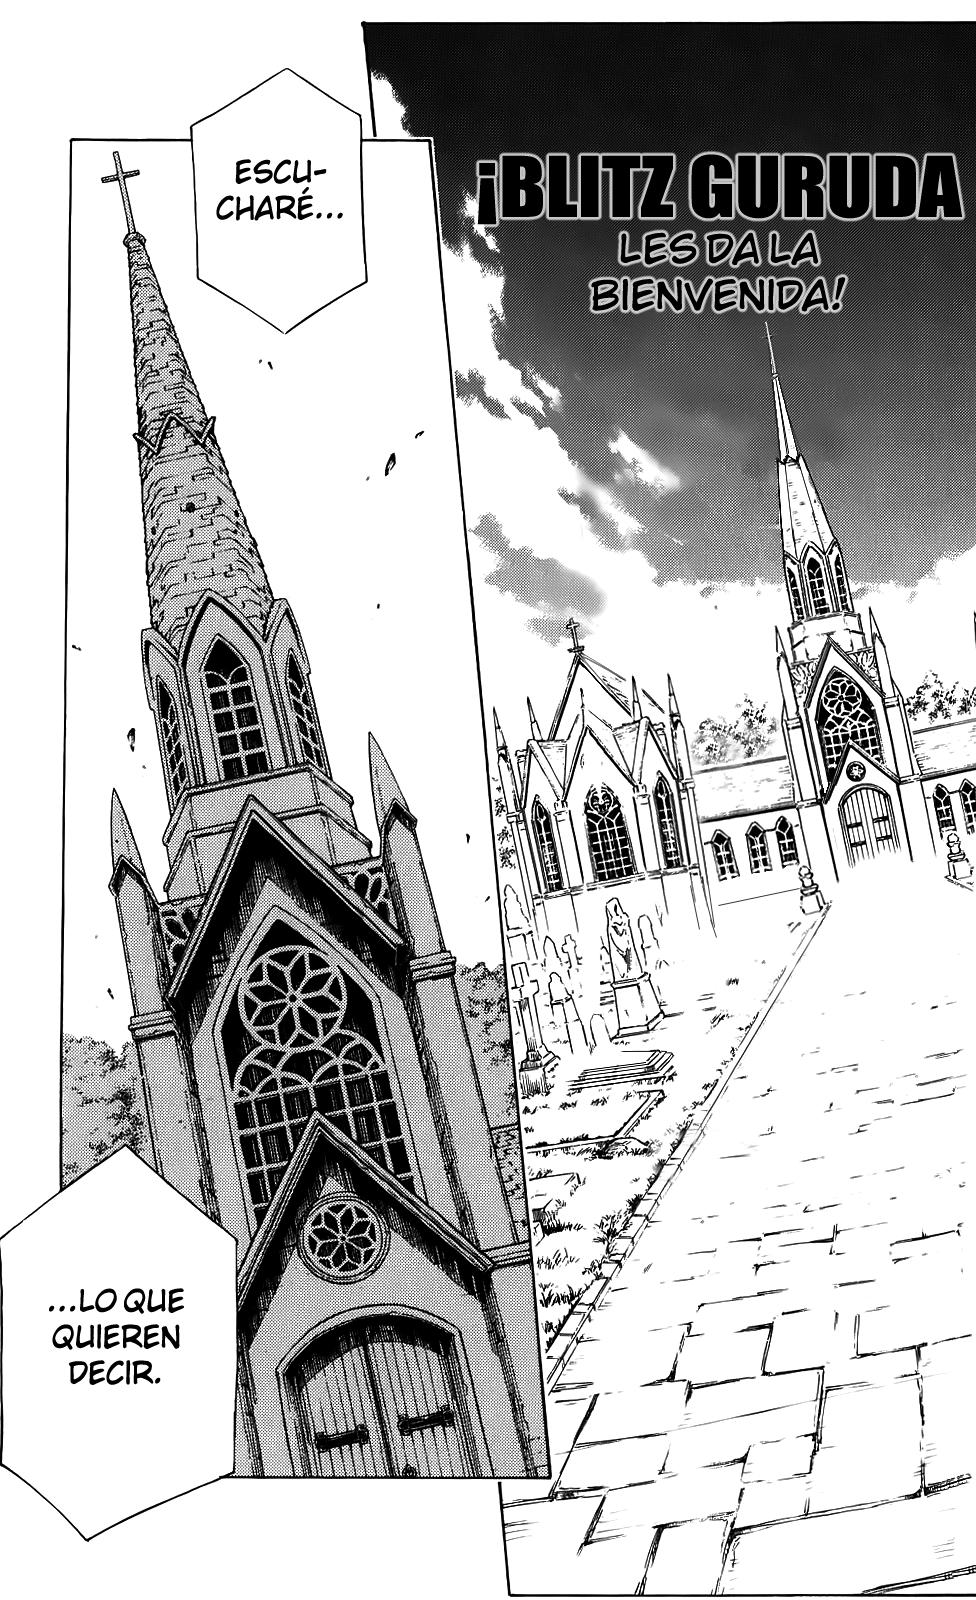 http://c5.ninemanga.com/es_manga/45/18797/447905/4a176dc4d5182a4c465e1a043aaa0a10.jpg Page 9